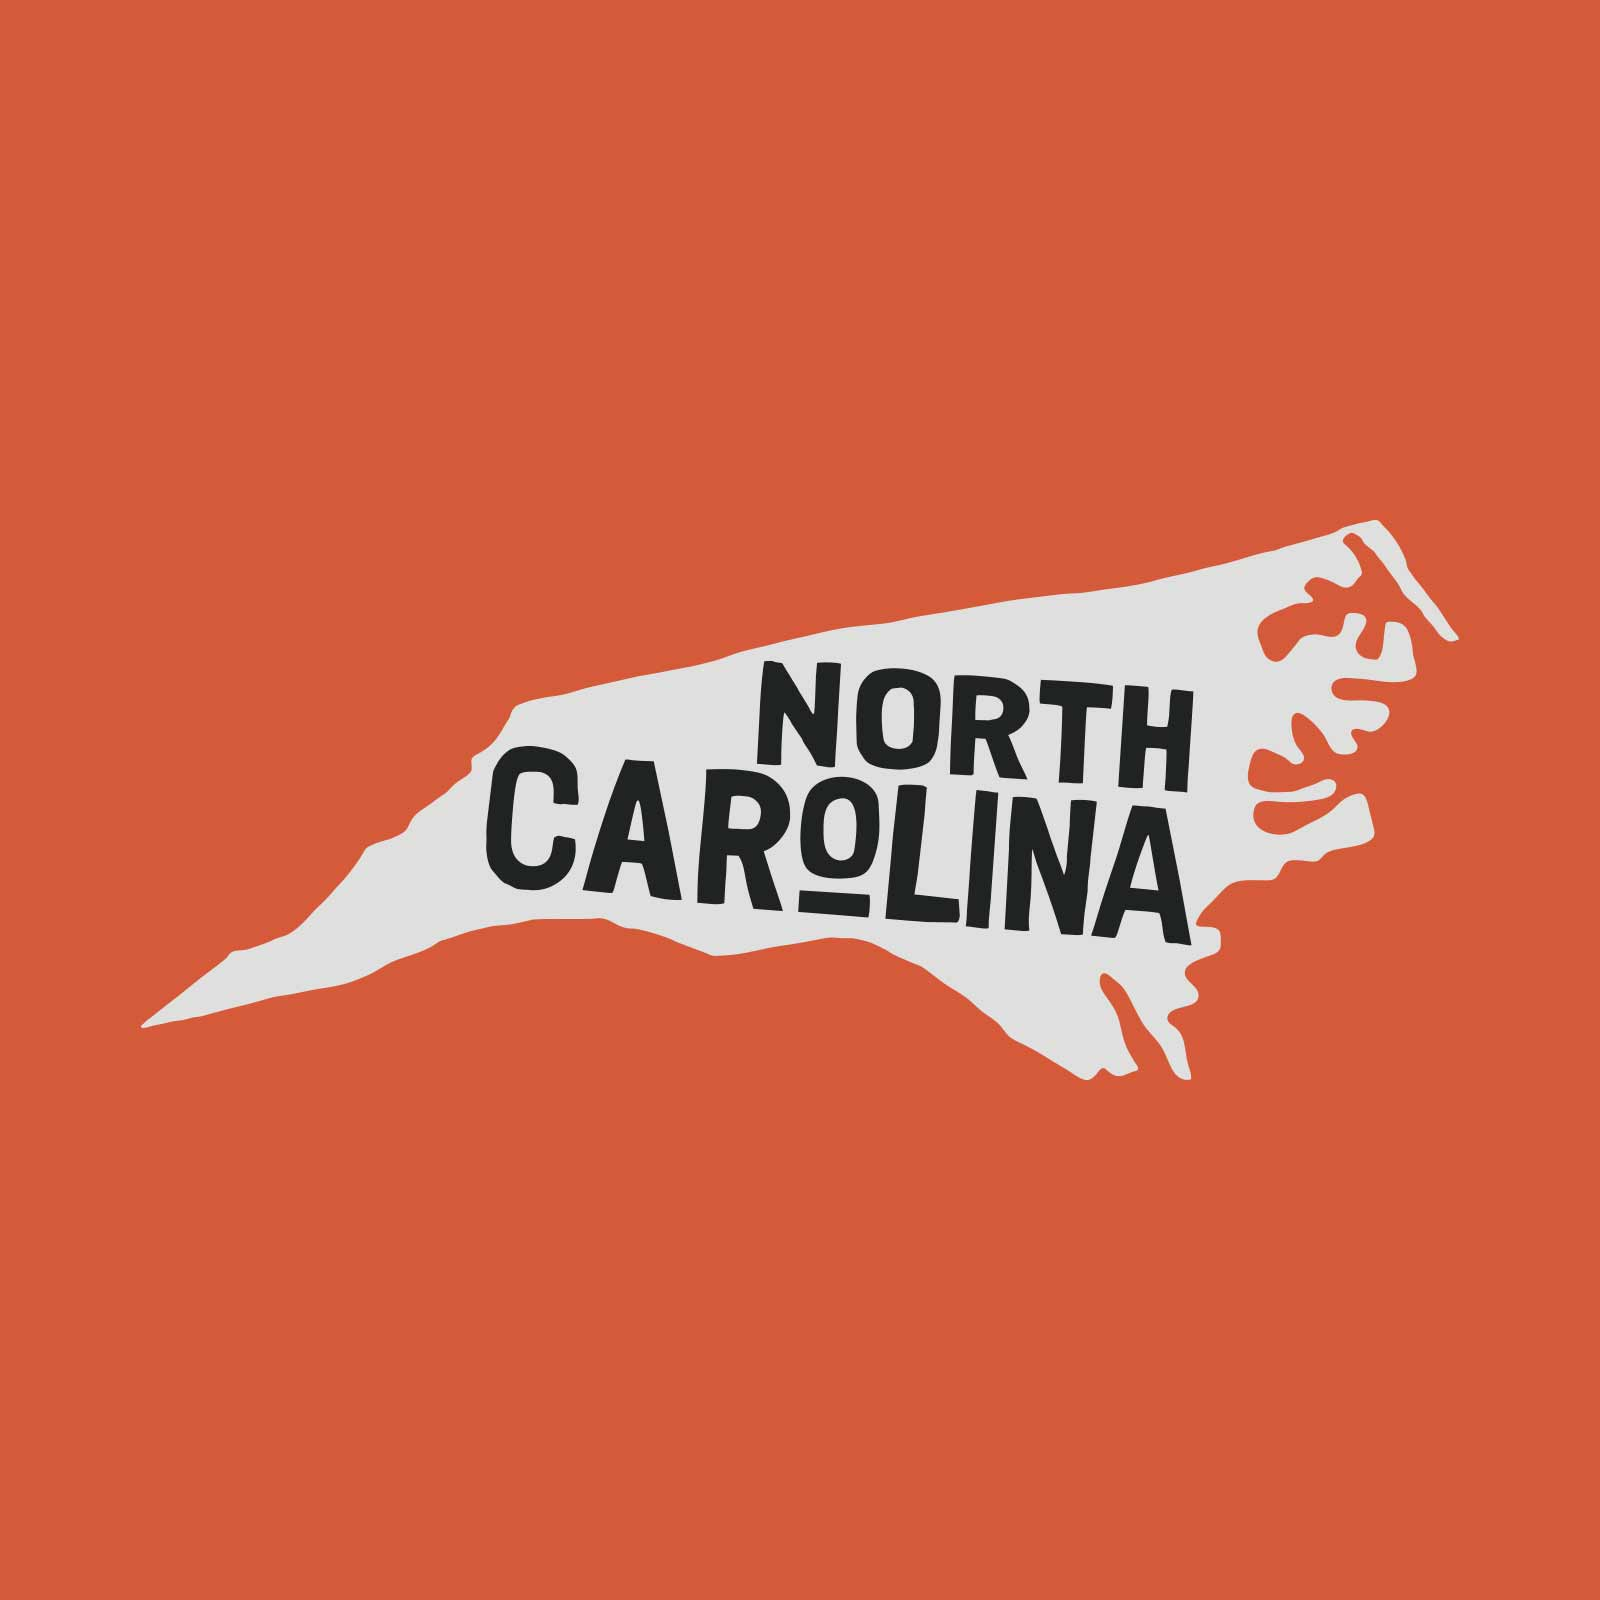 How to start a business in North Carolina